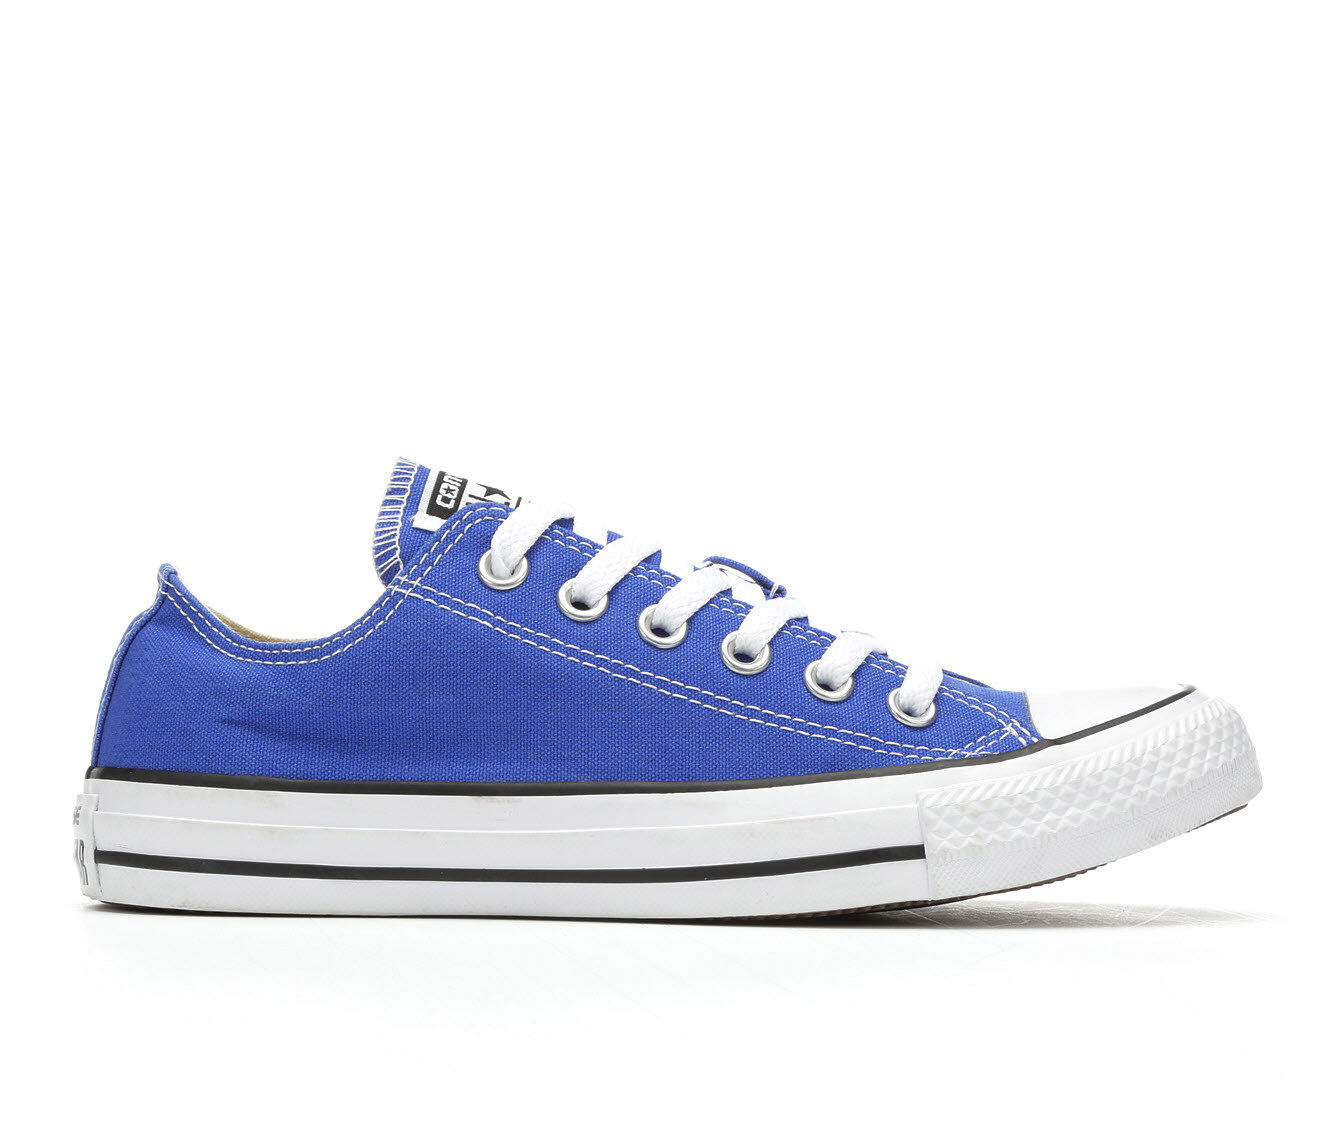 Converse Shoes and Sneakers